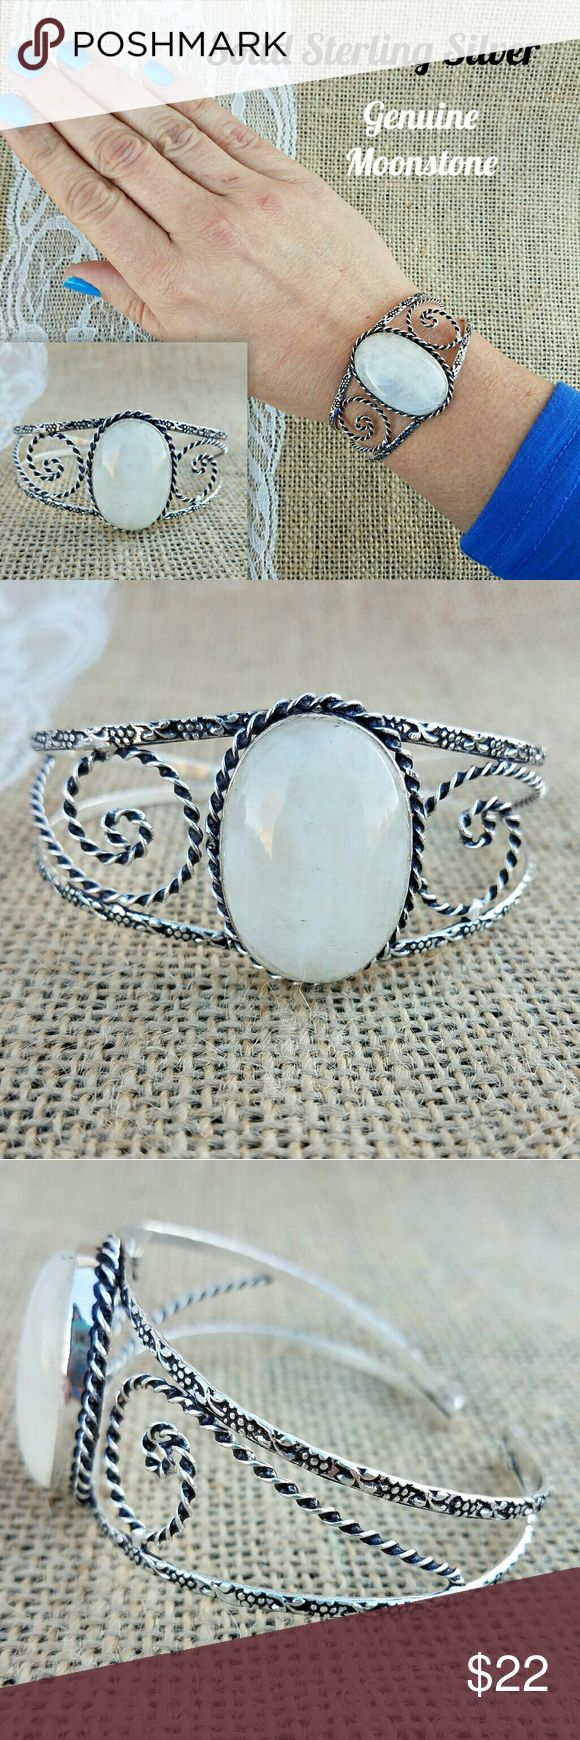 ❌SOLD Moonstone Sterling Silver Cuff Bracelet 🎁I'm currently running an additional sale. See listing at the top of my closet for details and end date.🎁  Goes back to $22 tomorrow! PRICE FIRM!   This bracelet is new. It's solid sterling silver w/a genuine Moonstone. It's bendable to allow it to fit different wrist sizes. It's 925 stamped (last pic).   *This is handmade, so it's not perfect. If you can't appreciate little imperfections (that make it unique), please don't purchase. Pics are…